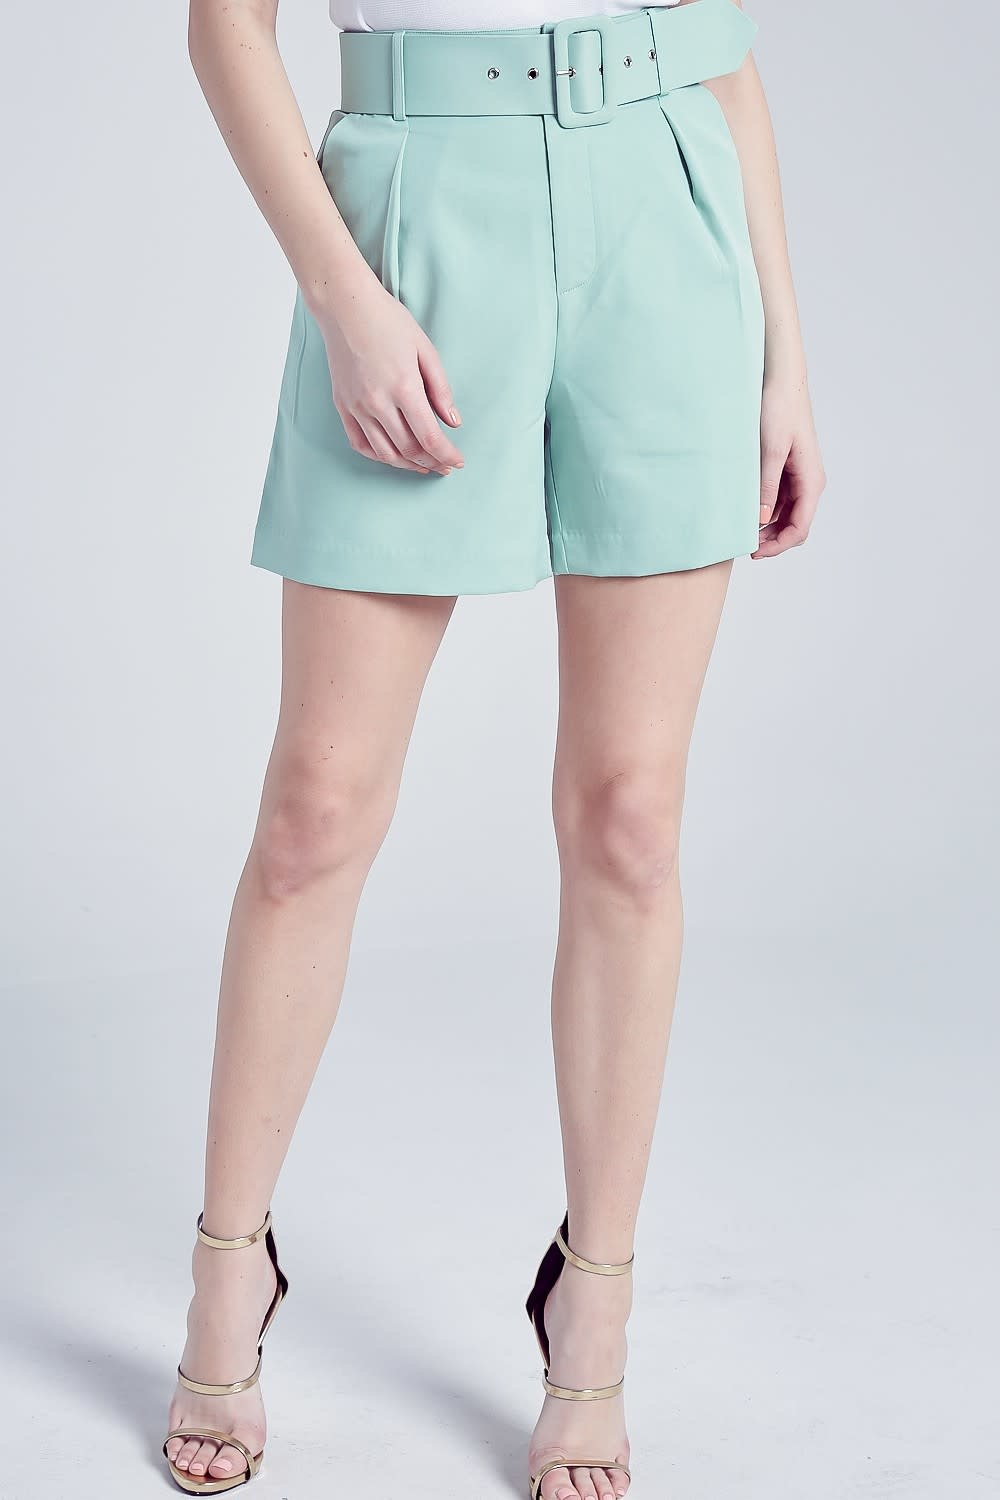 Blue Blush Lucky Lady Shorts